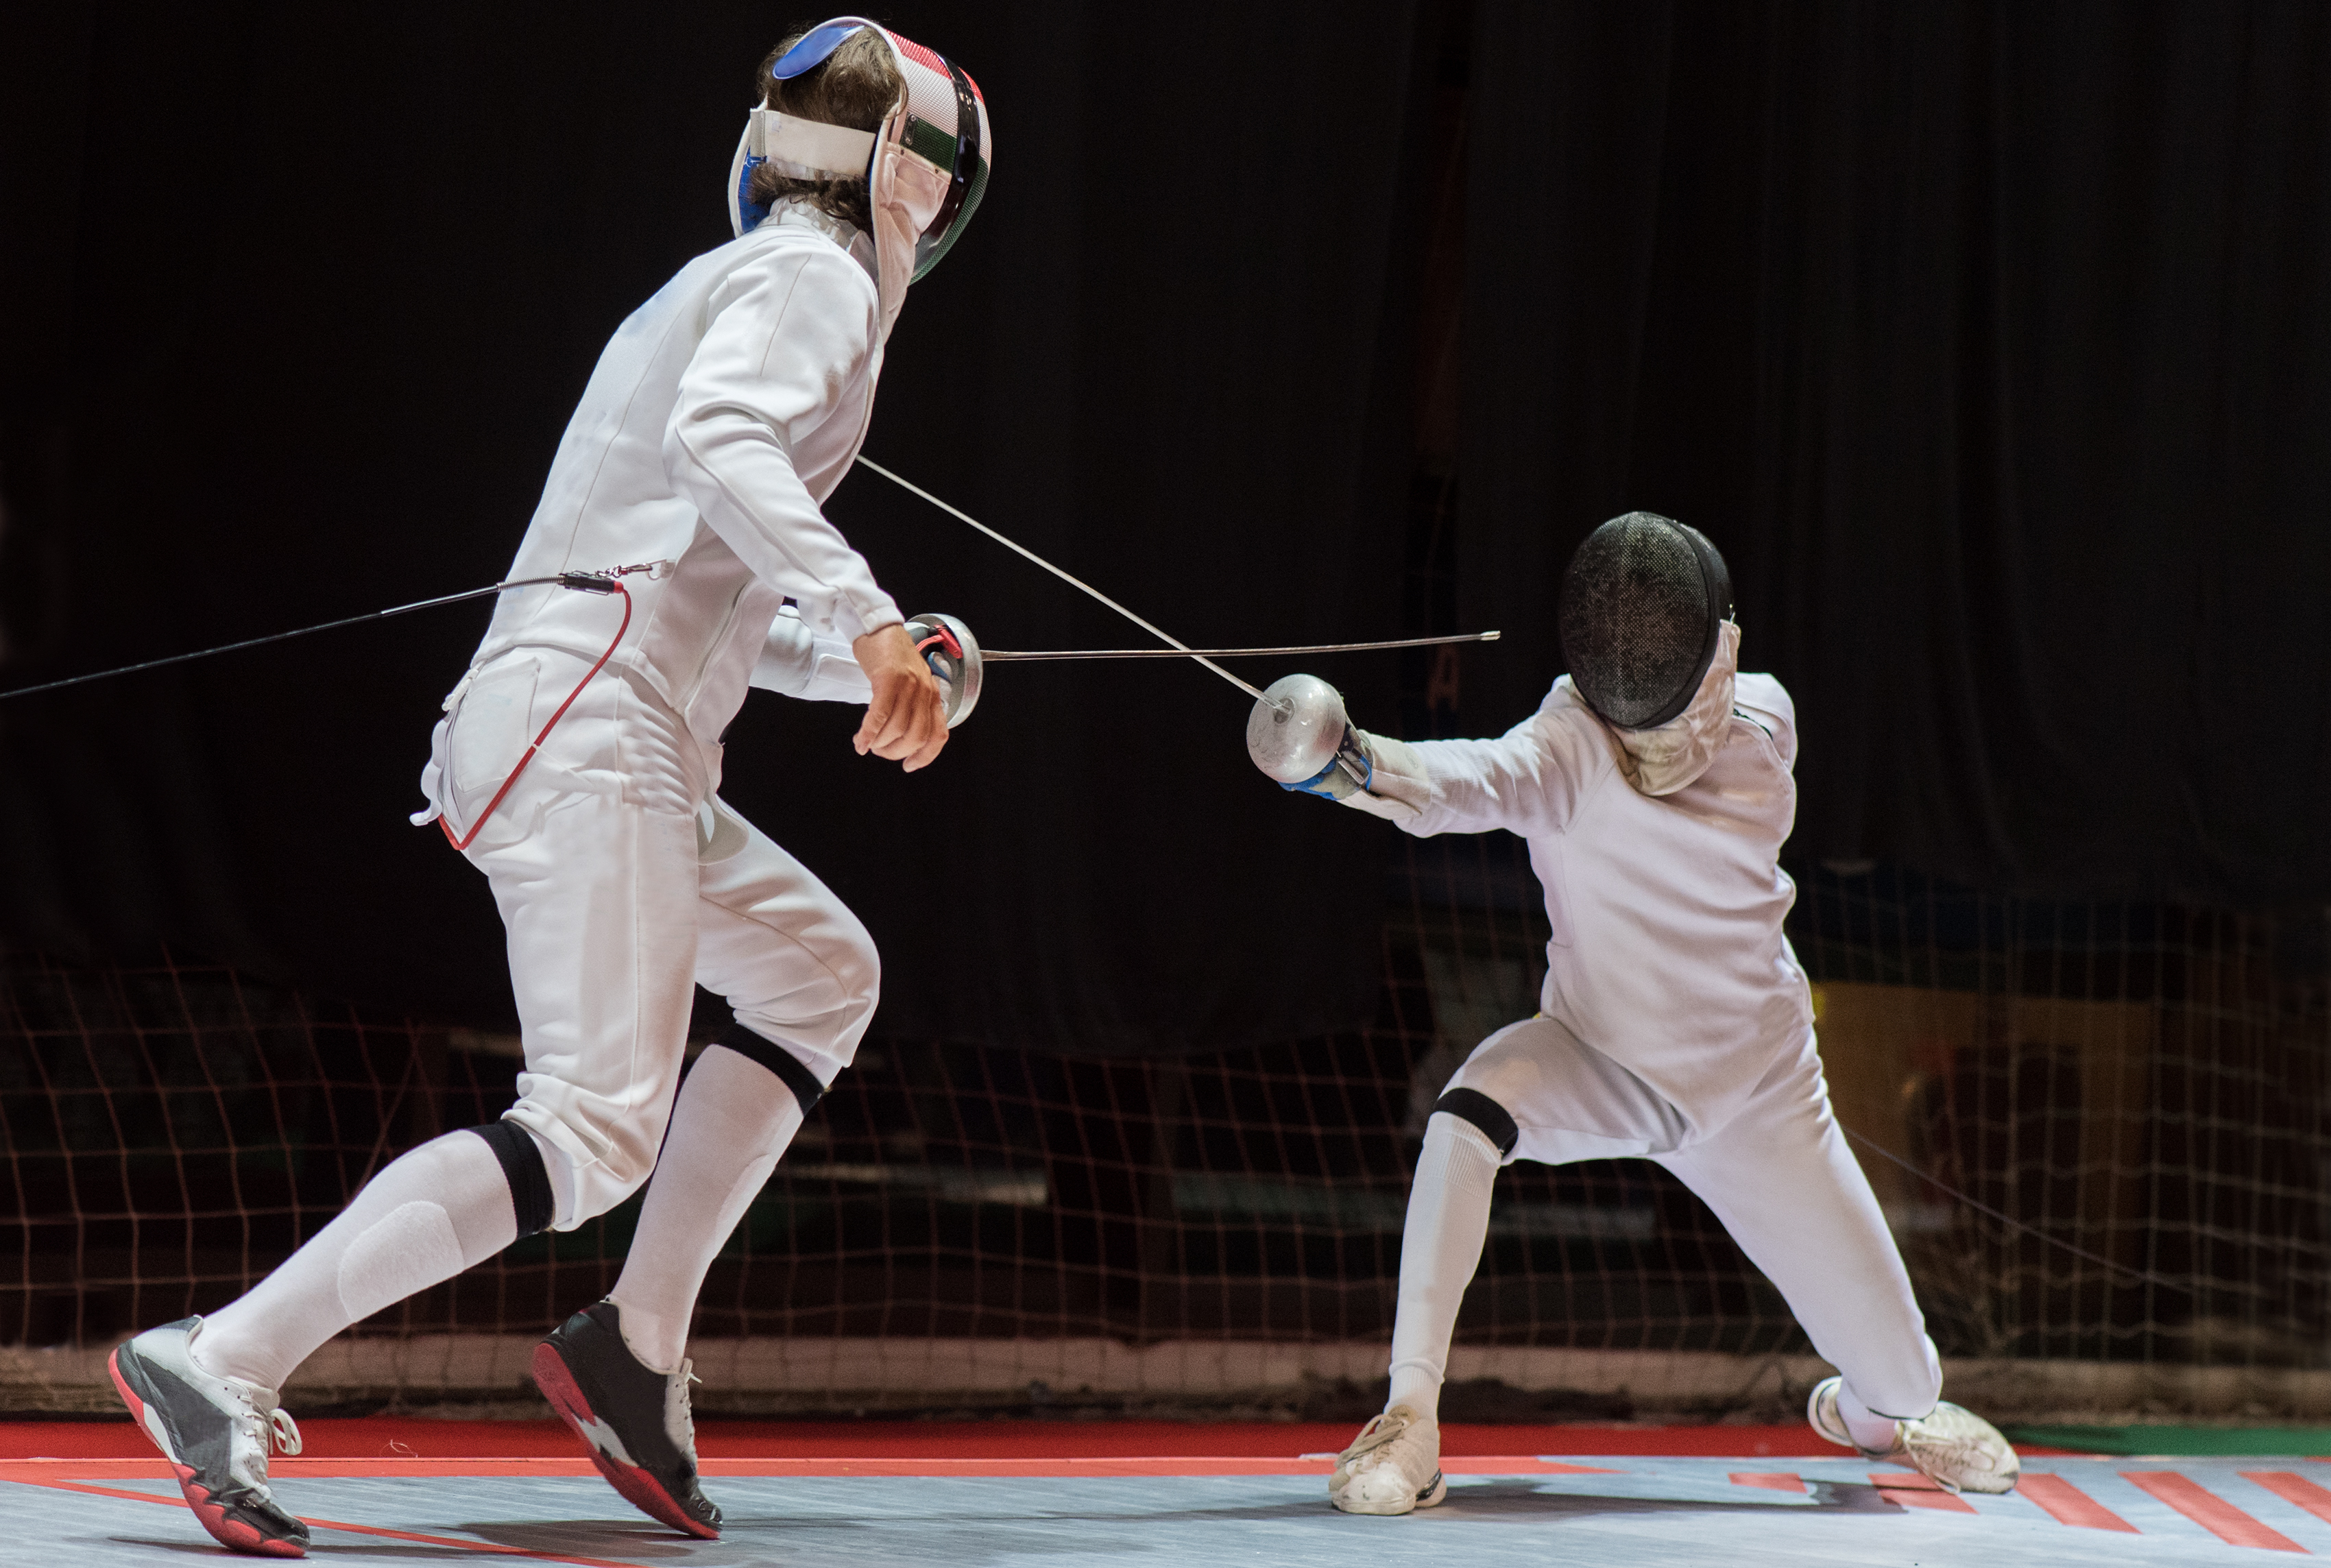 Pictured are people fencing. SHUTTERSTOCK/ Fotokostic